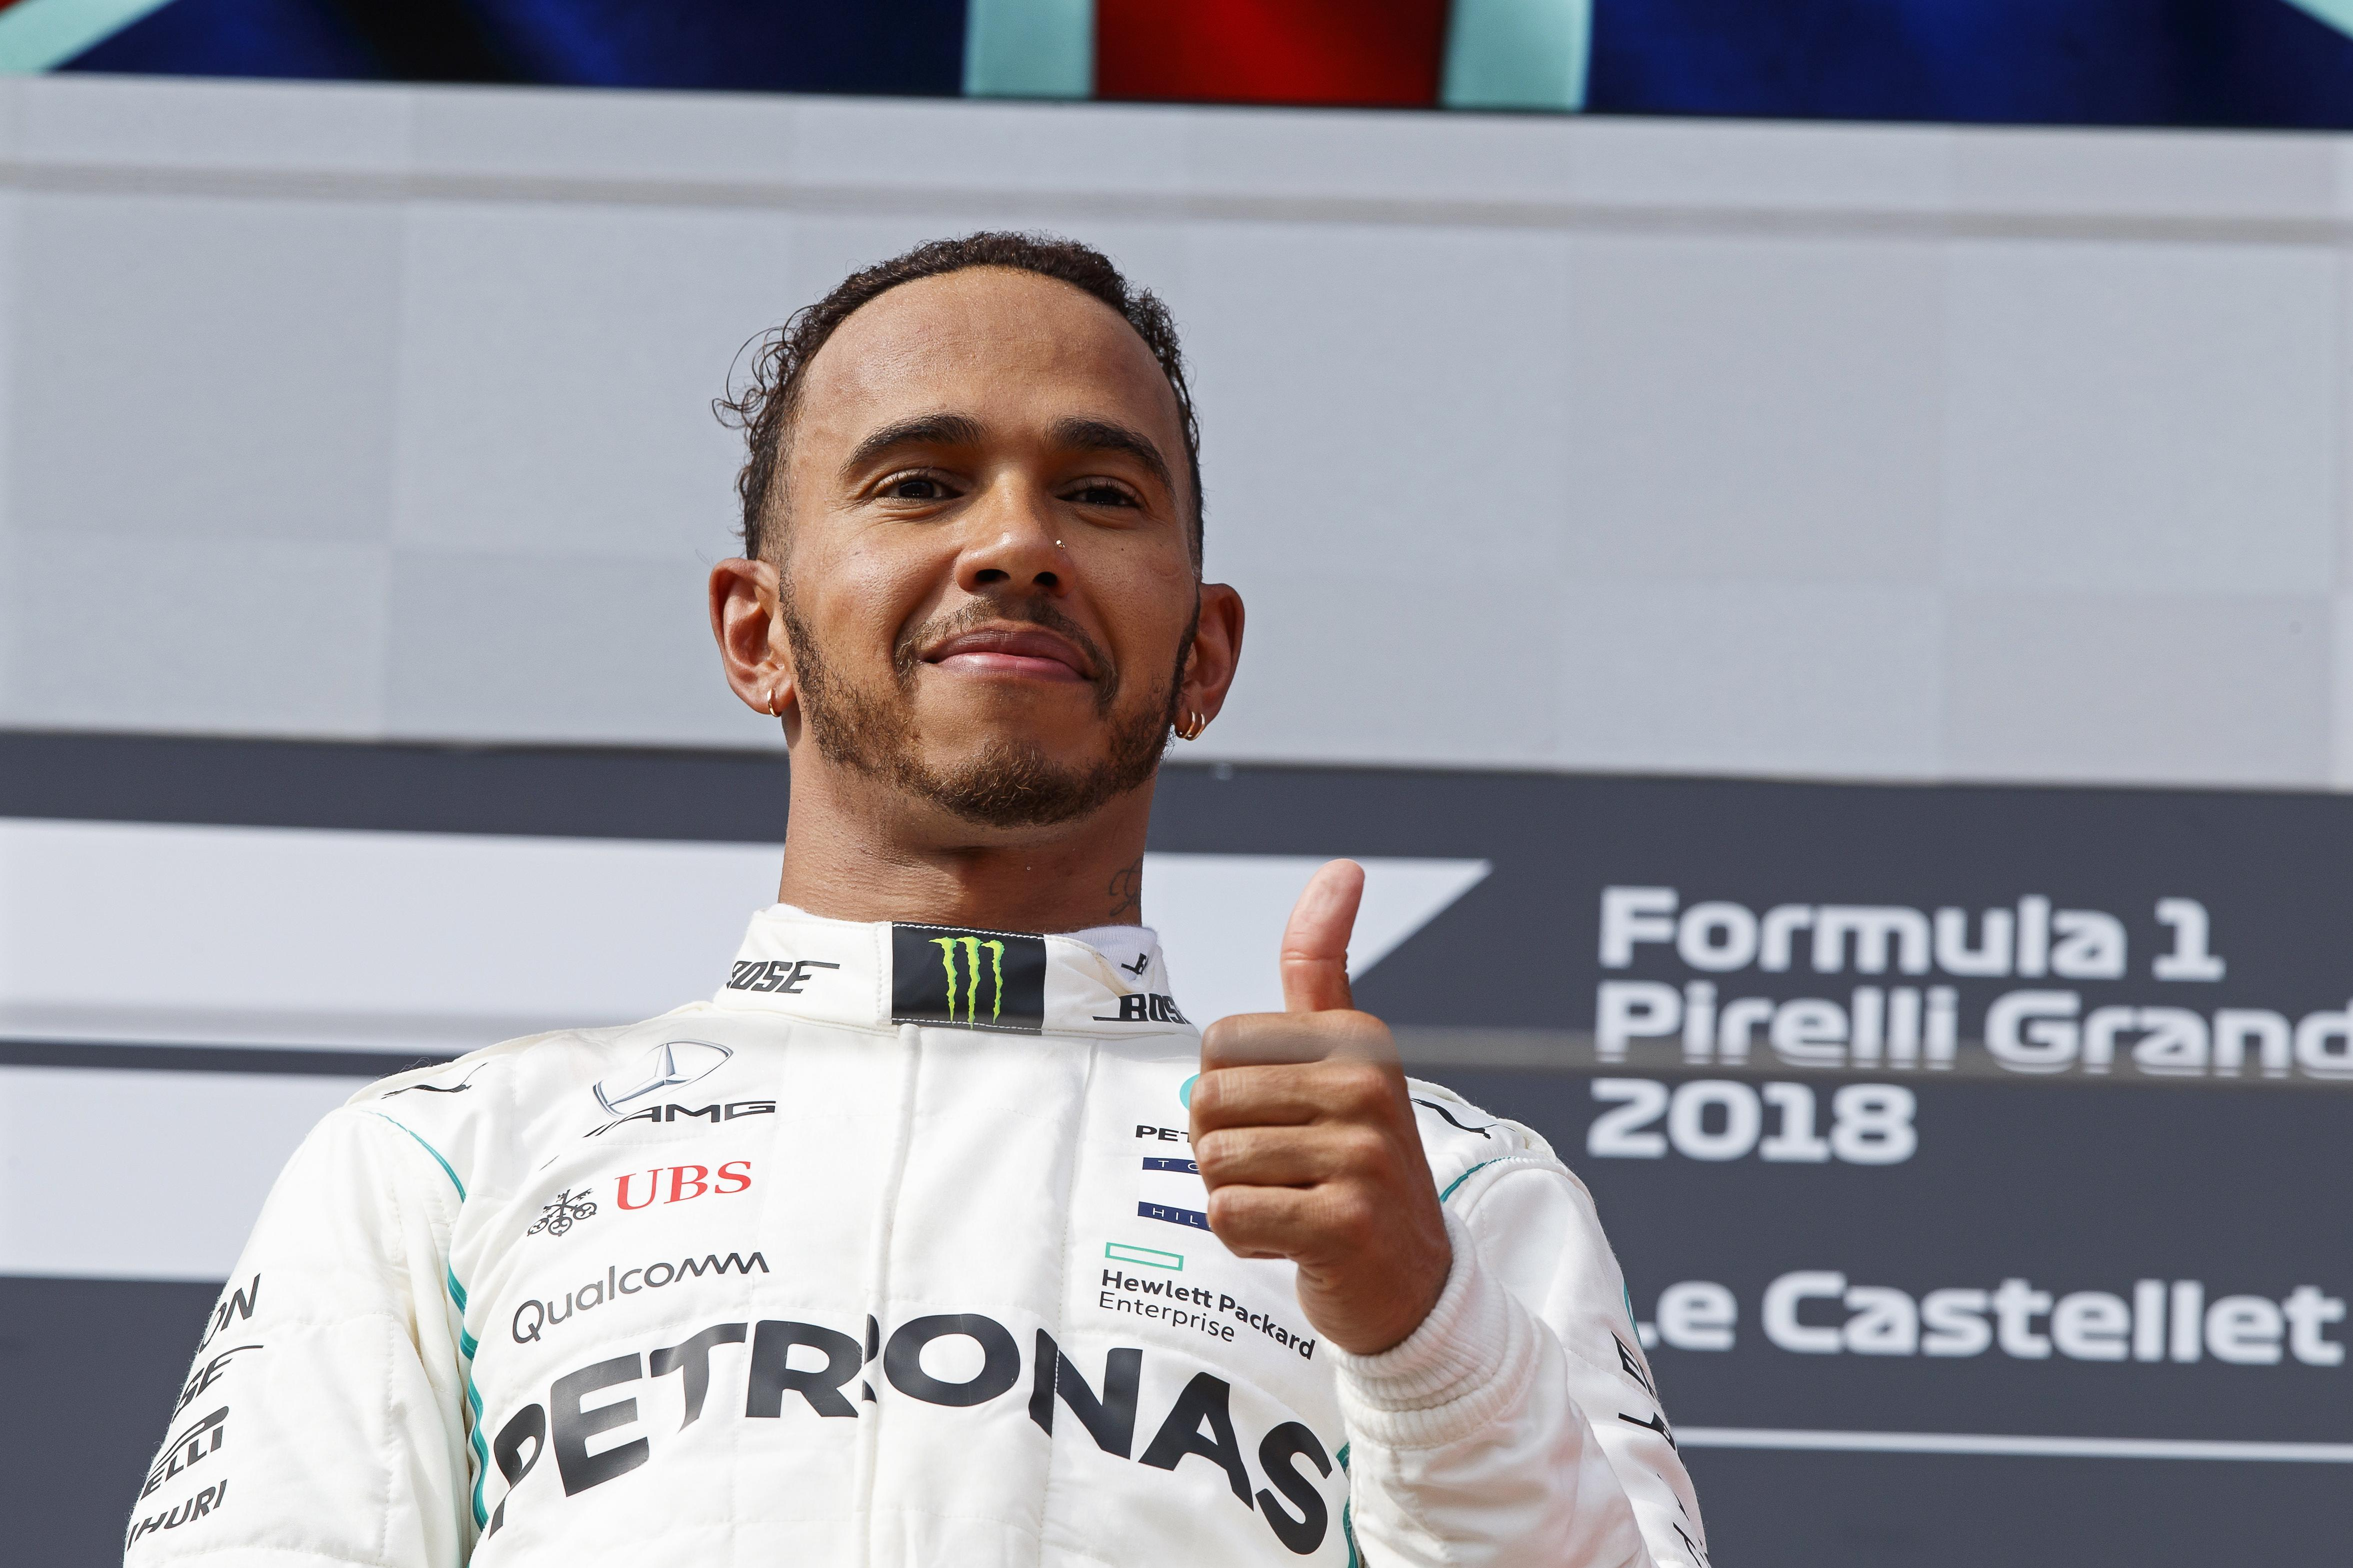 Lewis Hamilton has agreed new deal with Mercedes